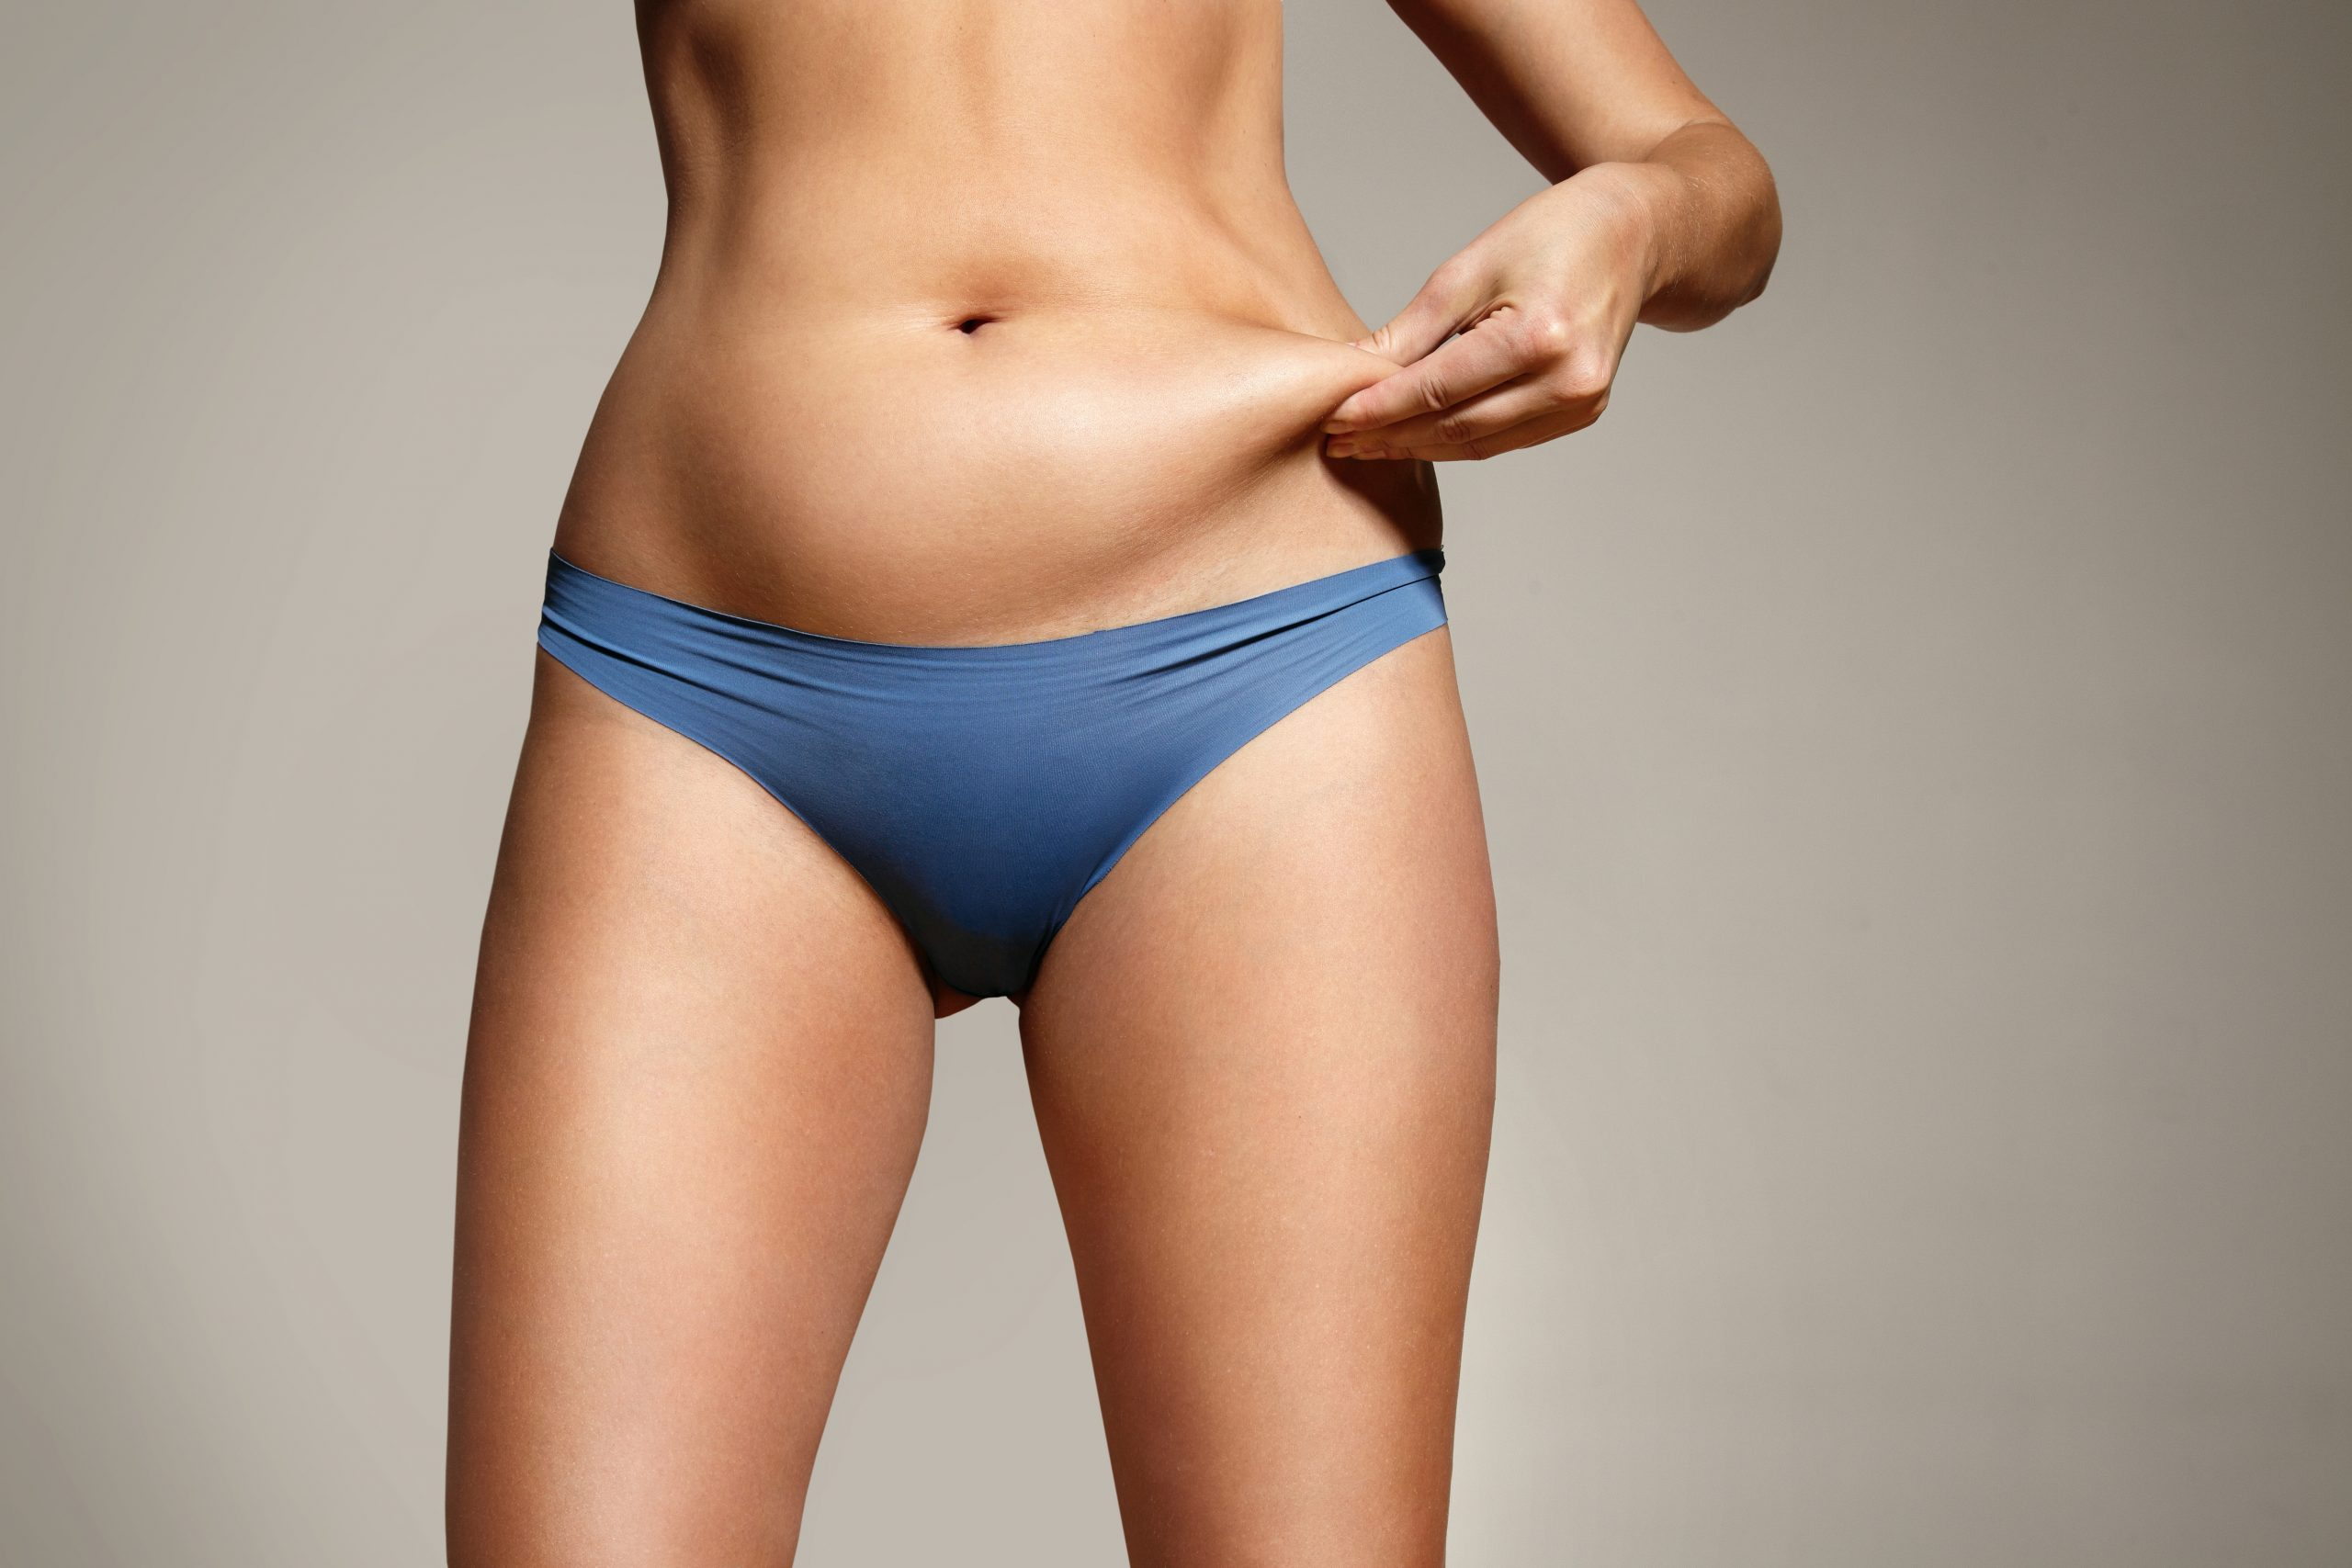 5 Reasons to Consider Liposuction